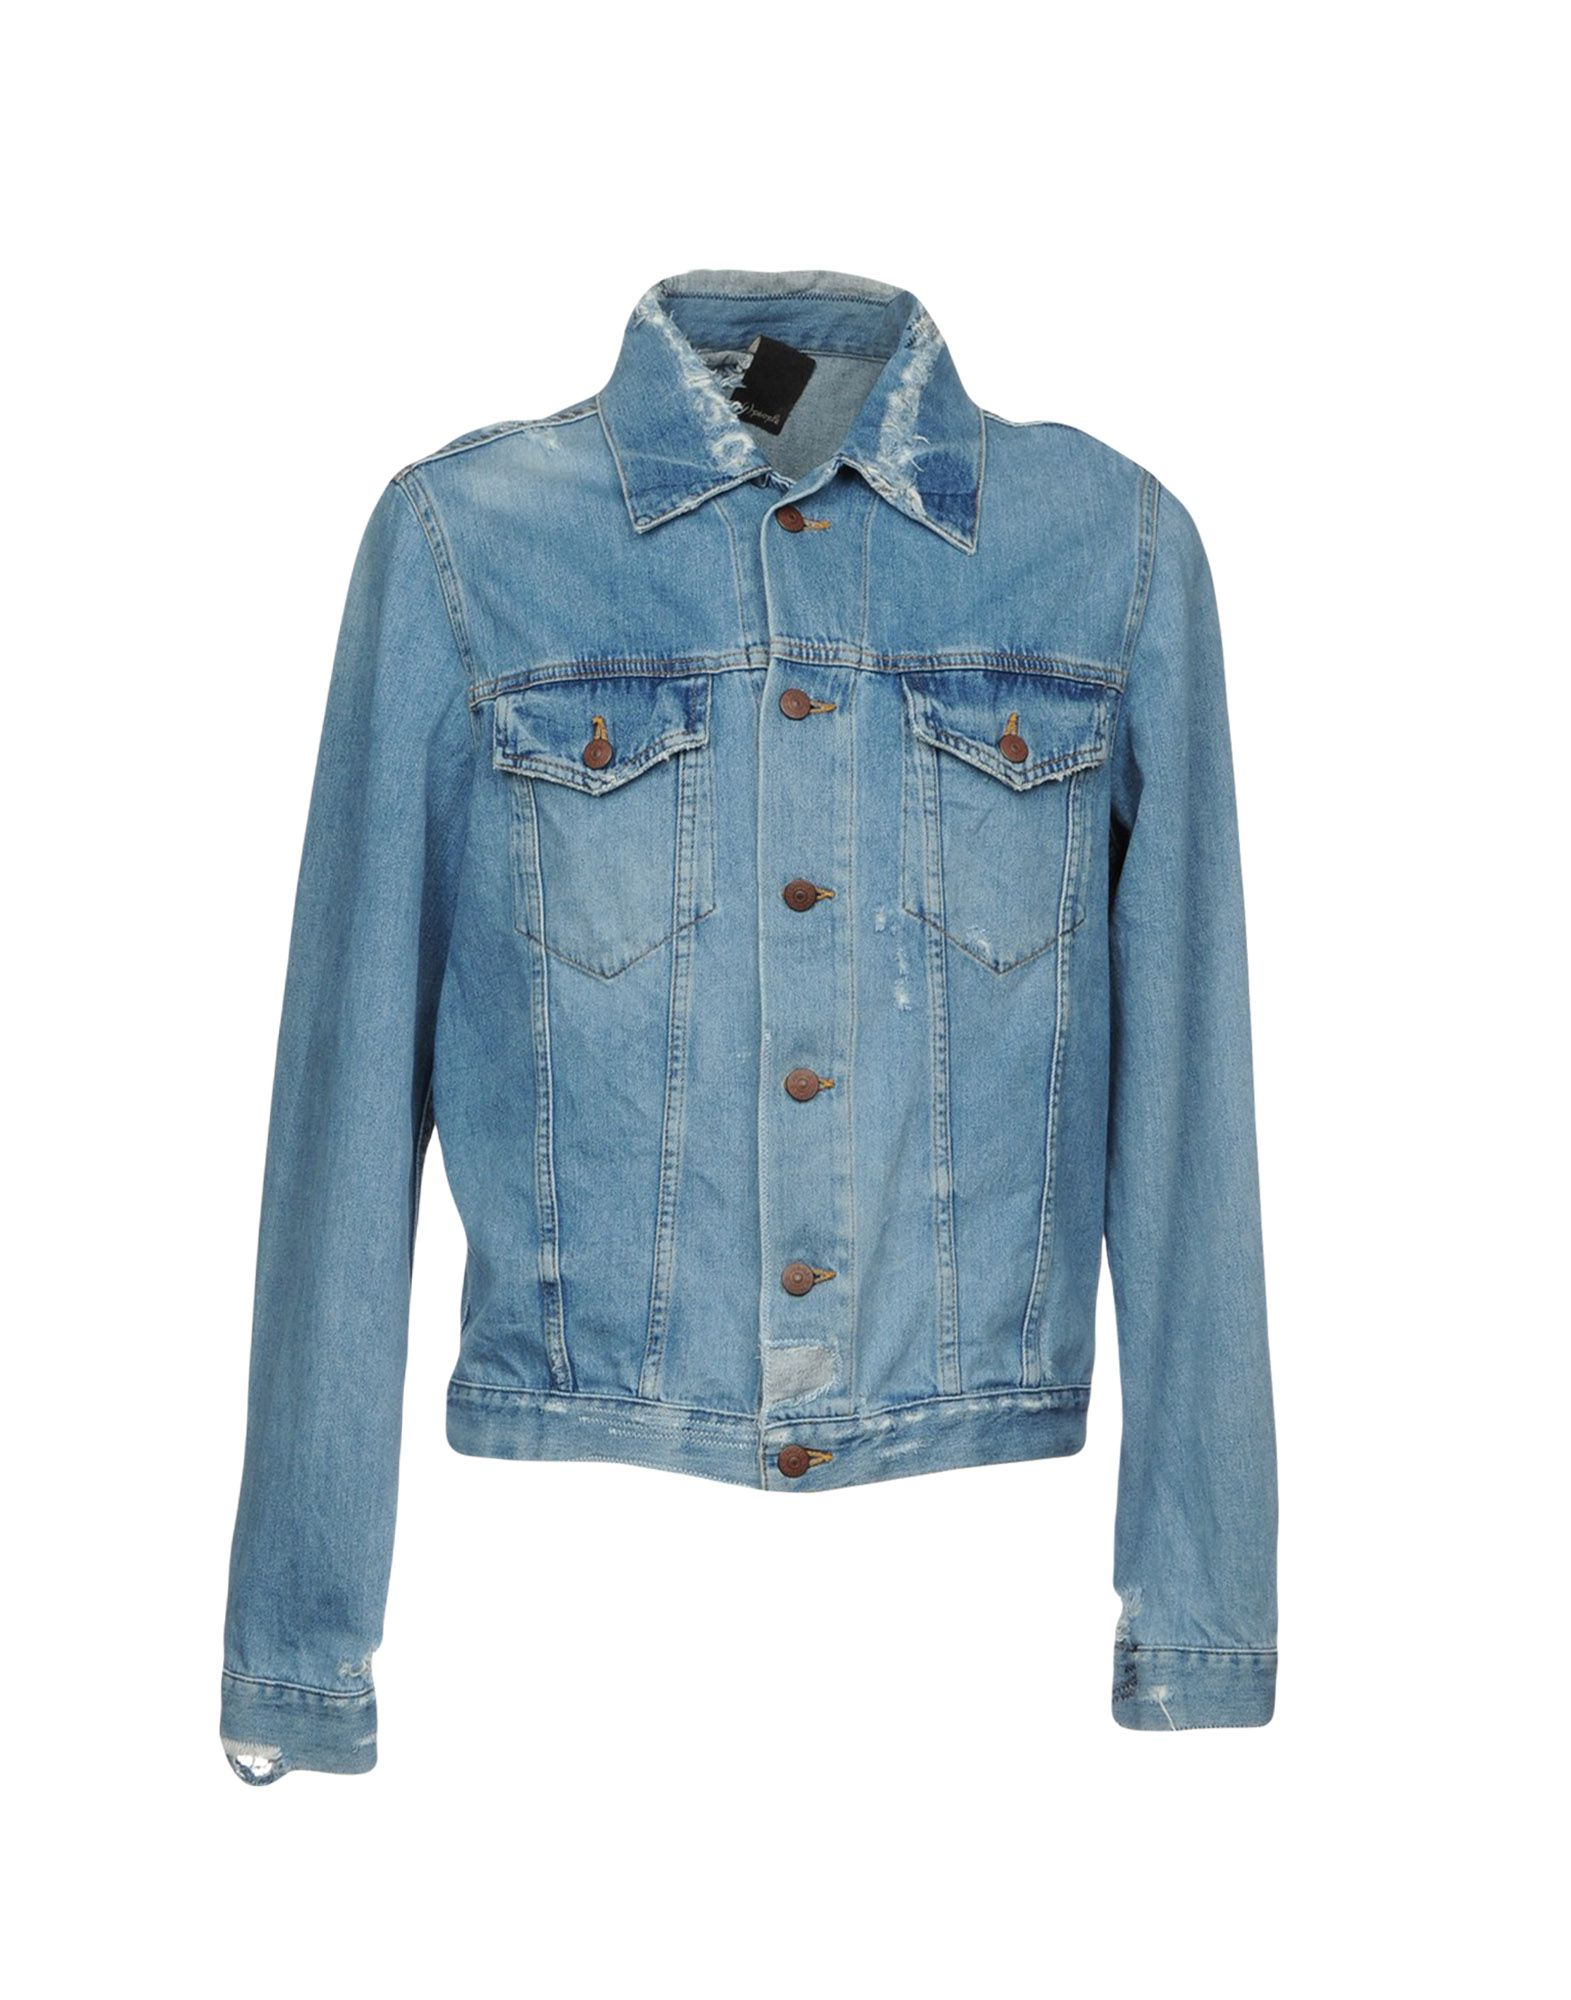 + PEOPLE (+) PEOPLE Denim outerwear